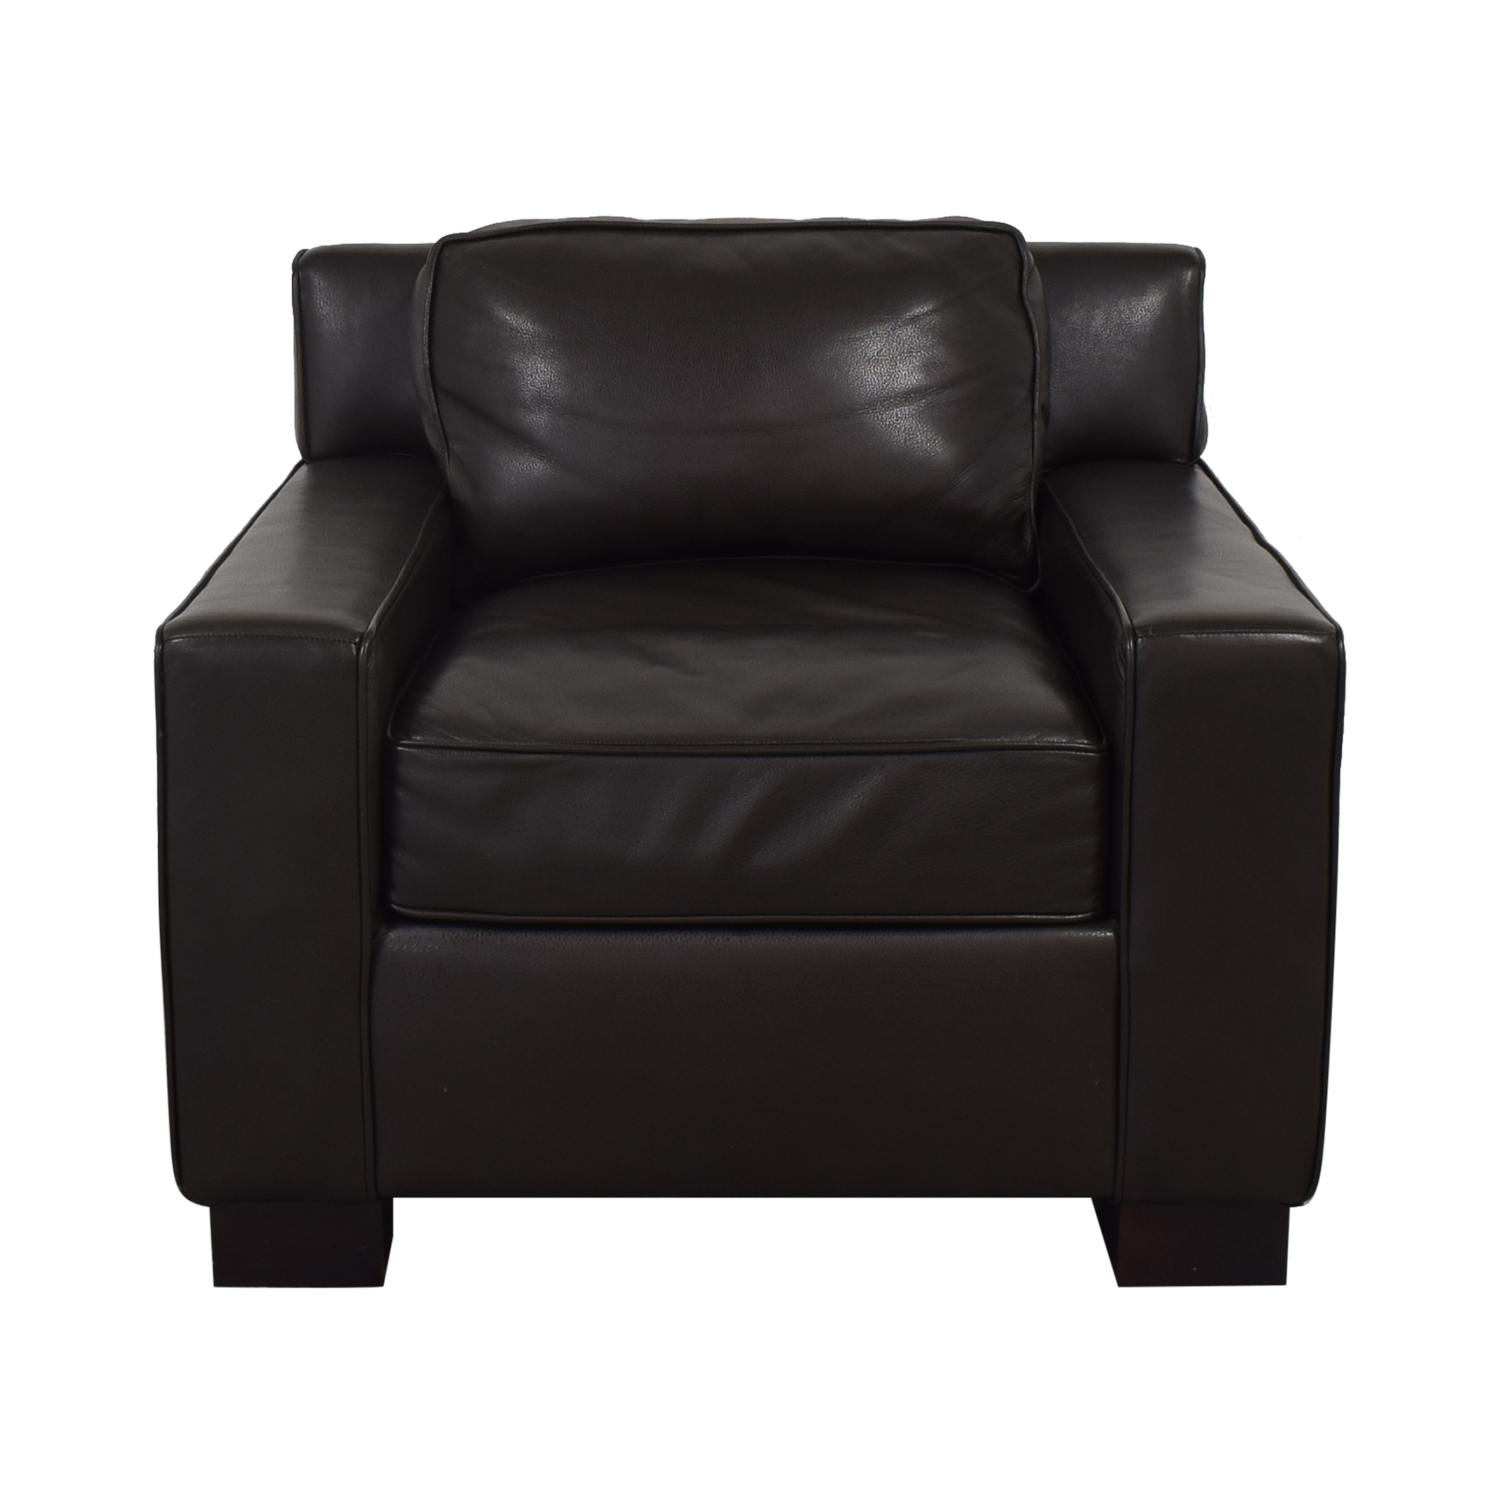 shop West Elm West Elm Leather Arm Chair online